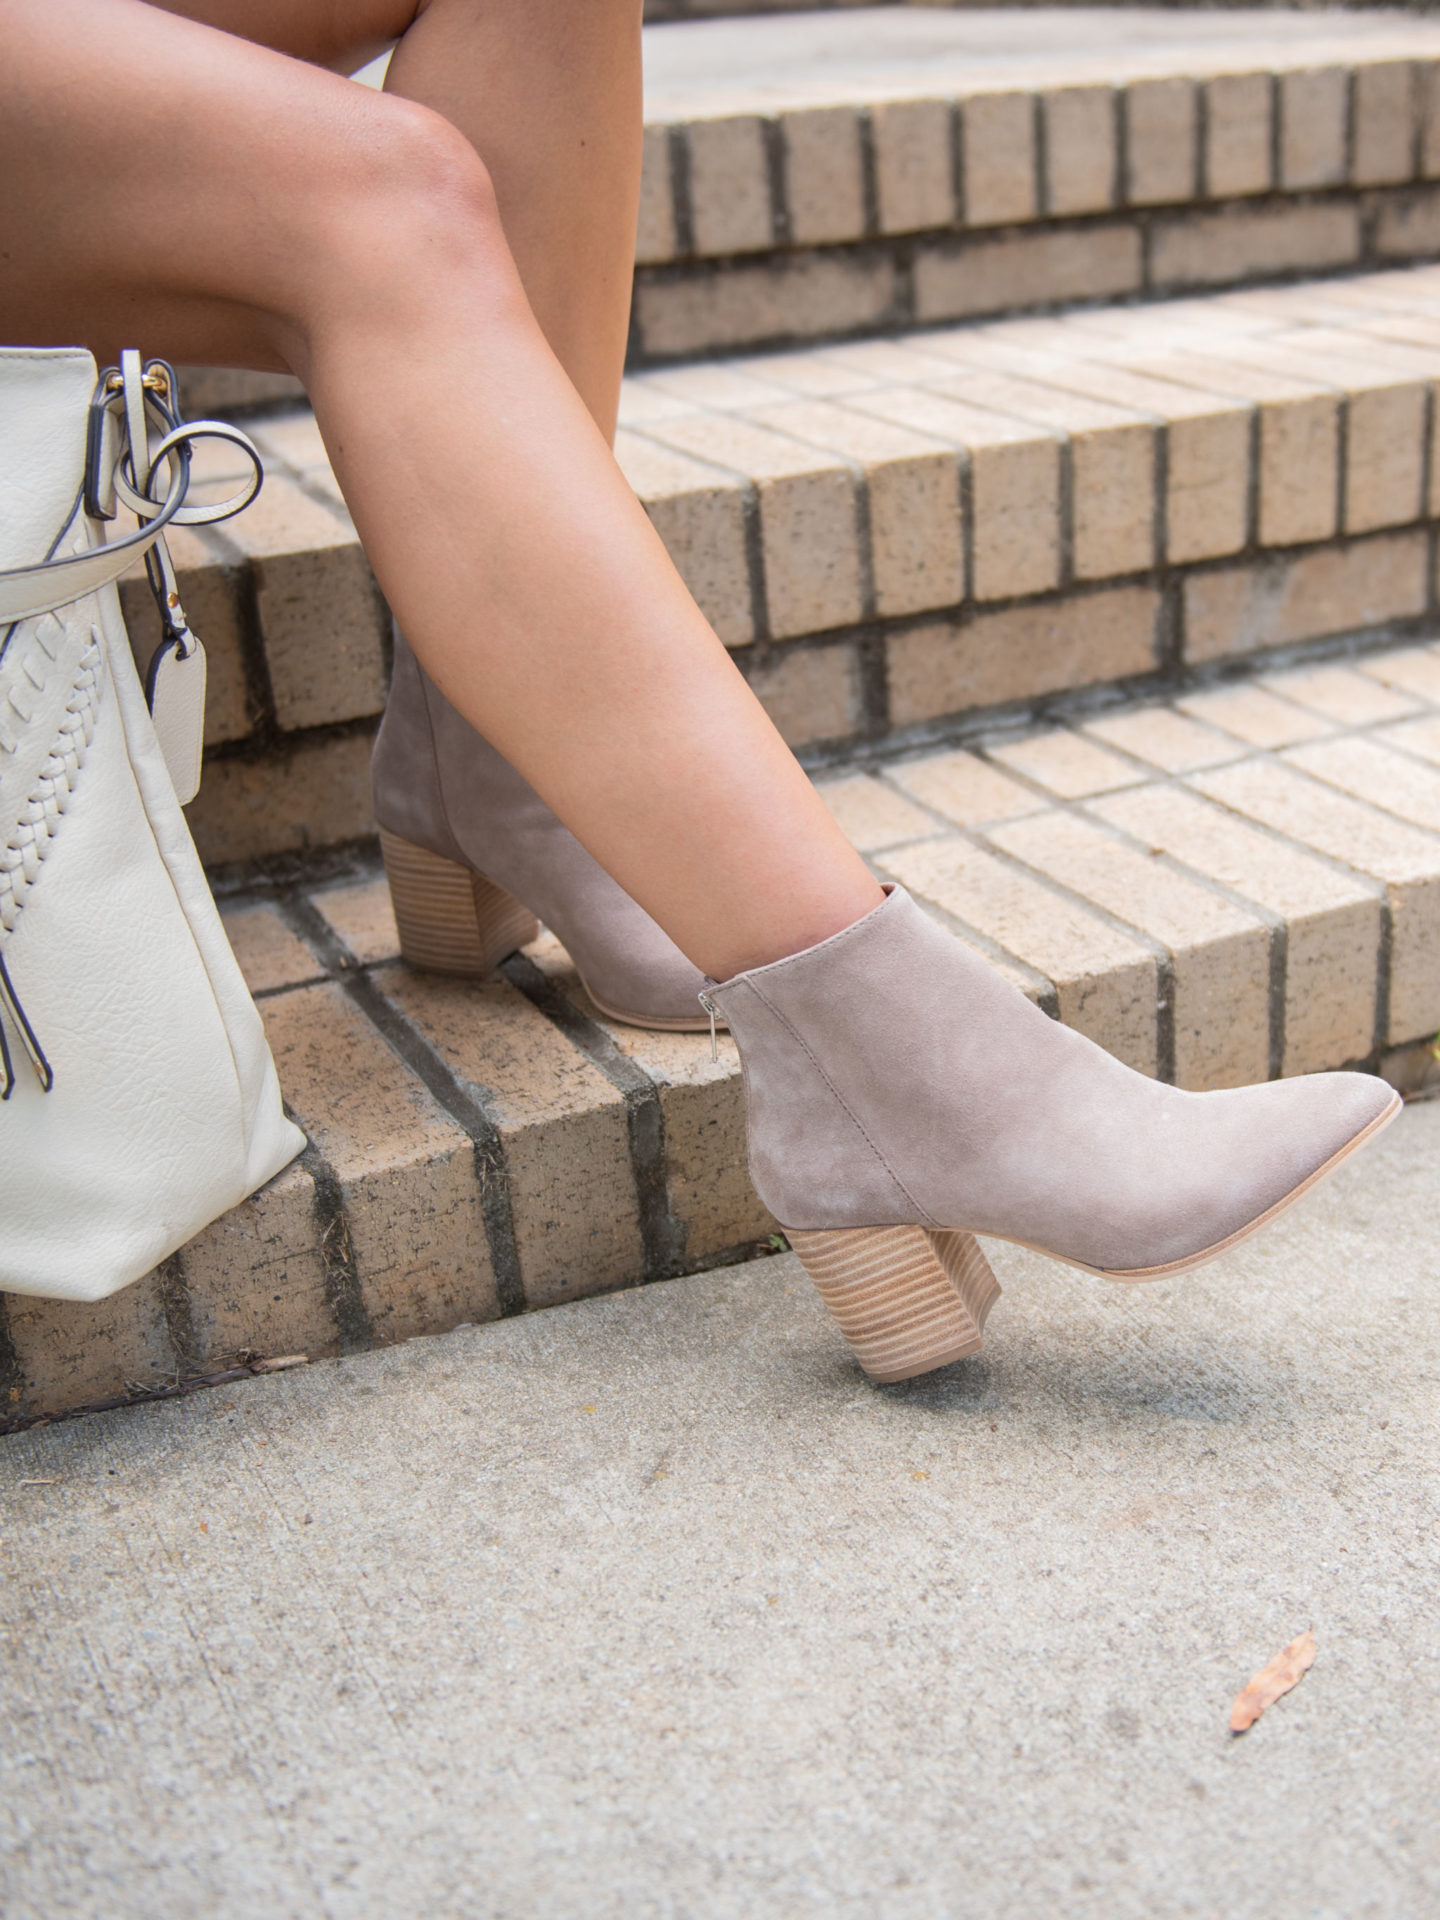 Styling booties from Summer to Fall